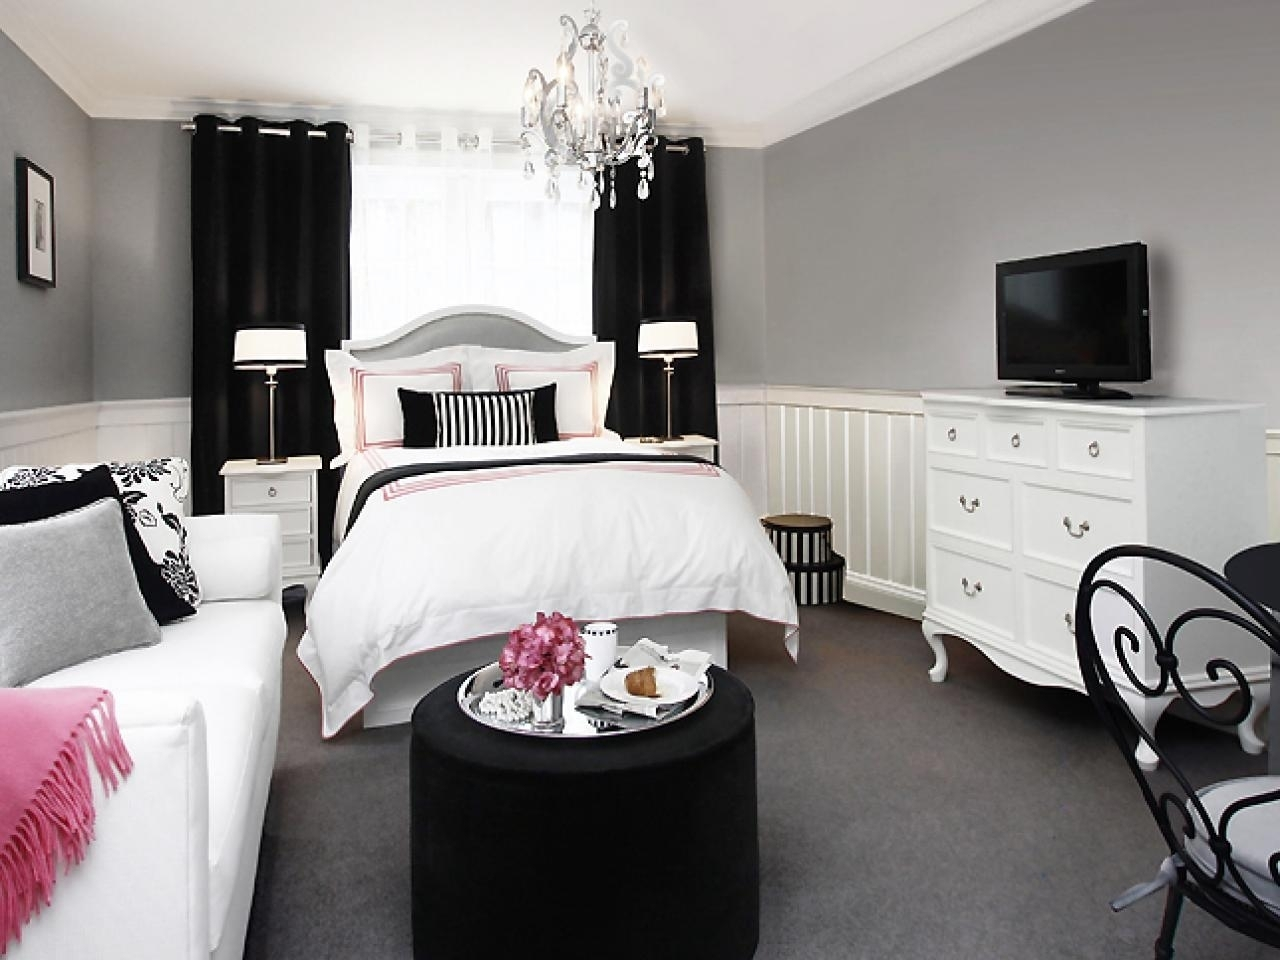 10 Awesome Black And White Room Ideas %name